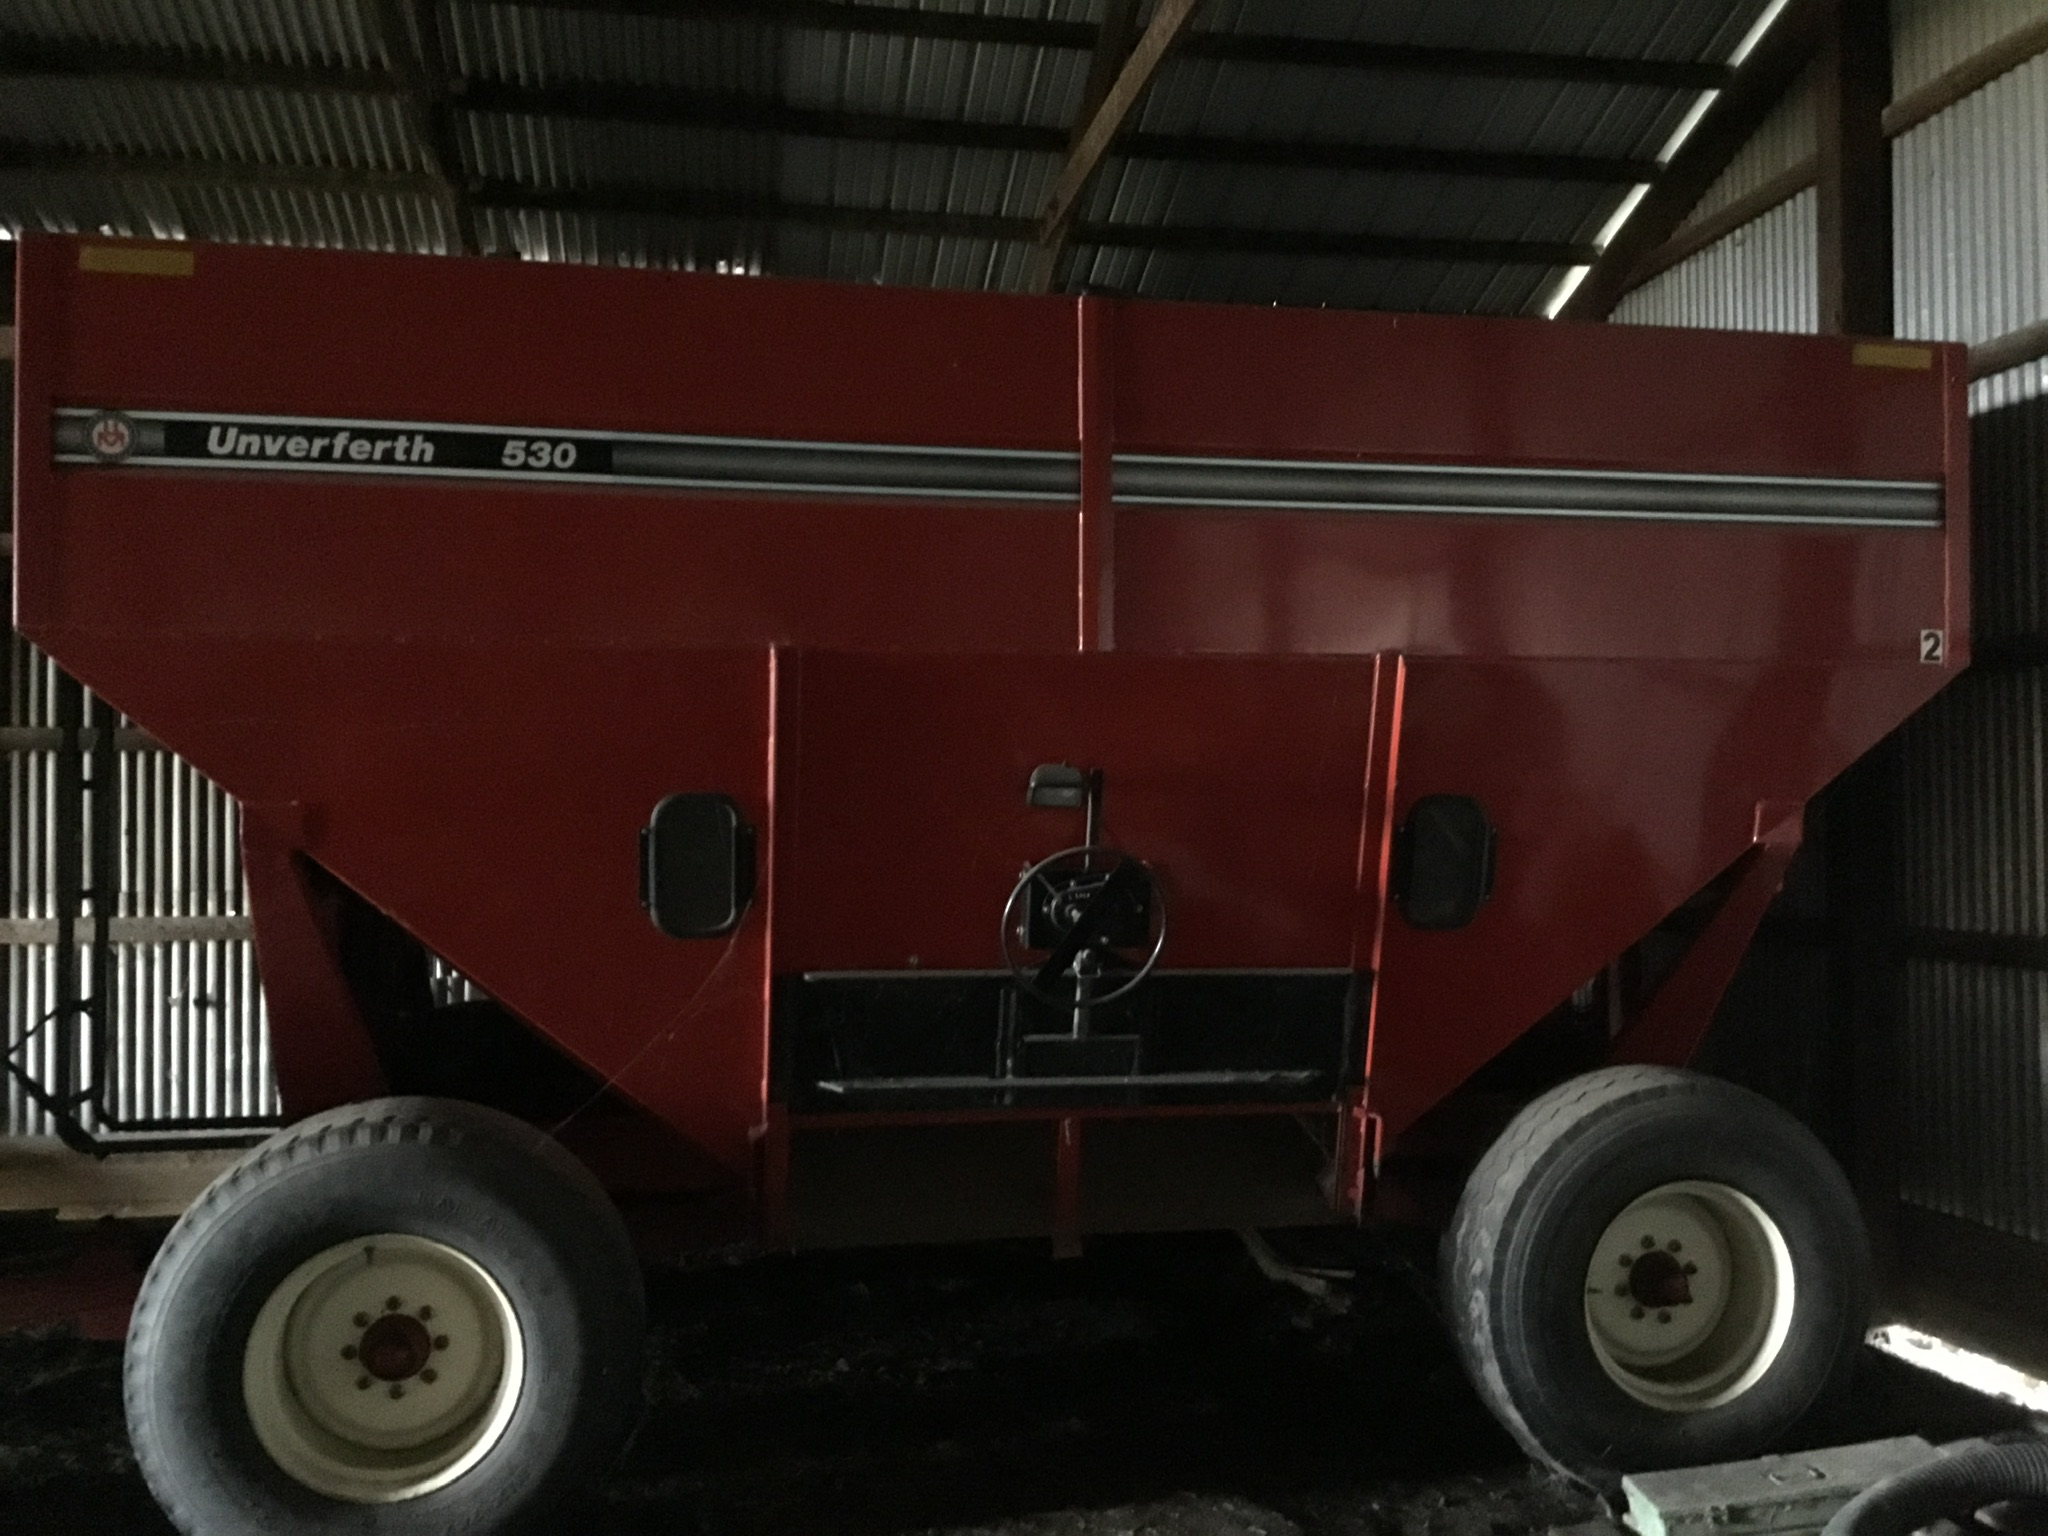 Unverferth 530 Side Dump Wagon, Brakes, 425-65R-22.5 Tires, Serial #B206-50-119, Red, Sharp - Image 5 of 6